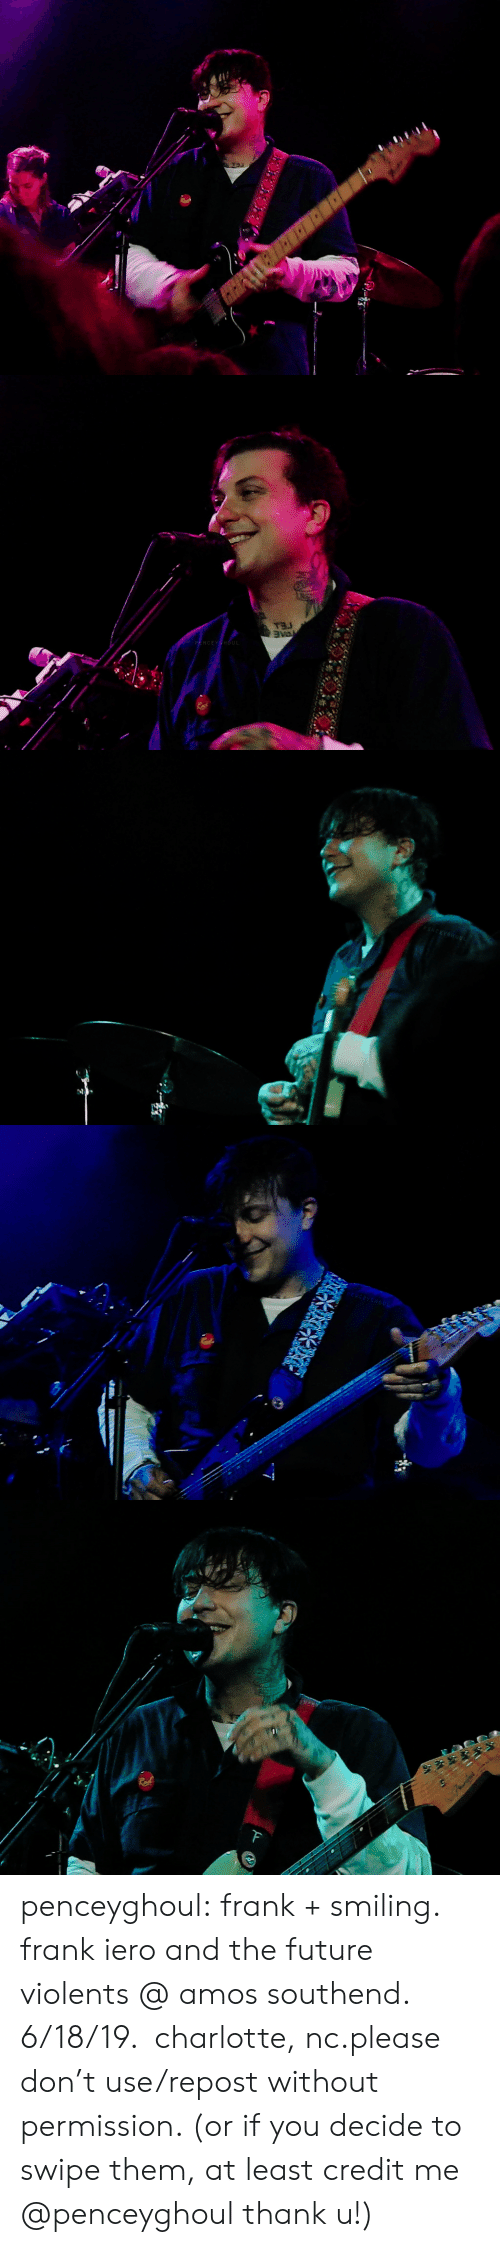 Charlotte: PENCEYGHO   DAE  PENCEYHOUL   PENCEYGH oUI   GHOUL   ENCEYGHOUt  F penceyghoul:  frank + smiling. frank iero and the future violents@ amos southend. 6/18/19. charlotte, nc.please don't use/repost without permission. (or if you decide to swipe them, at least credit me @penceyghoul thank u!)